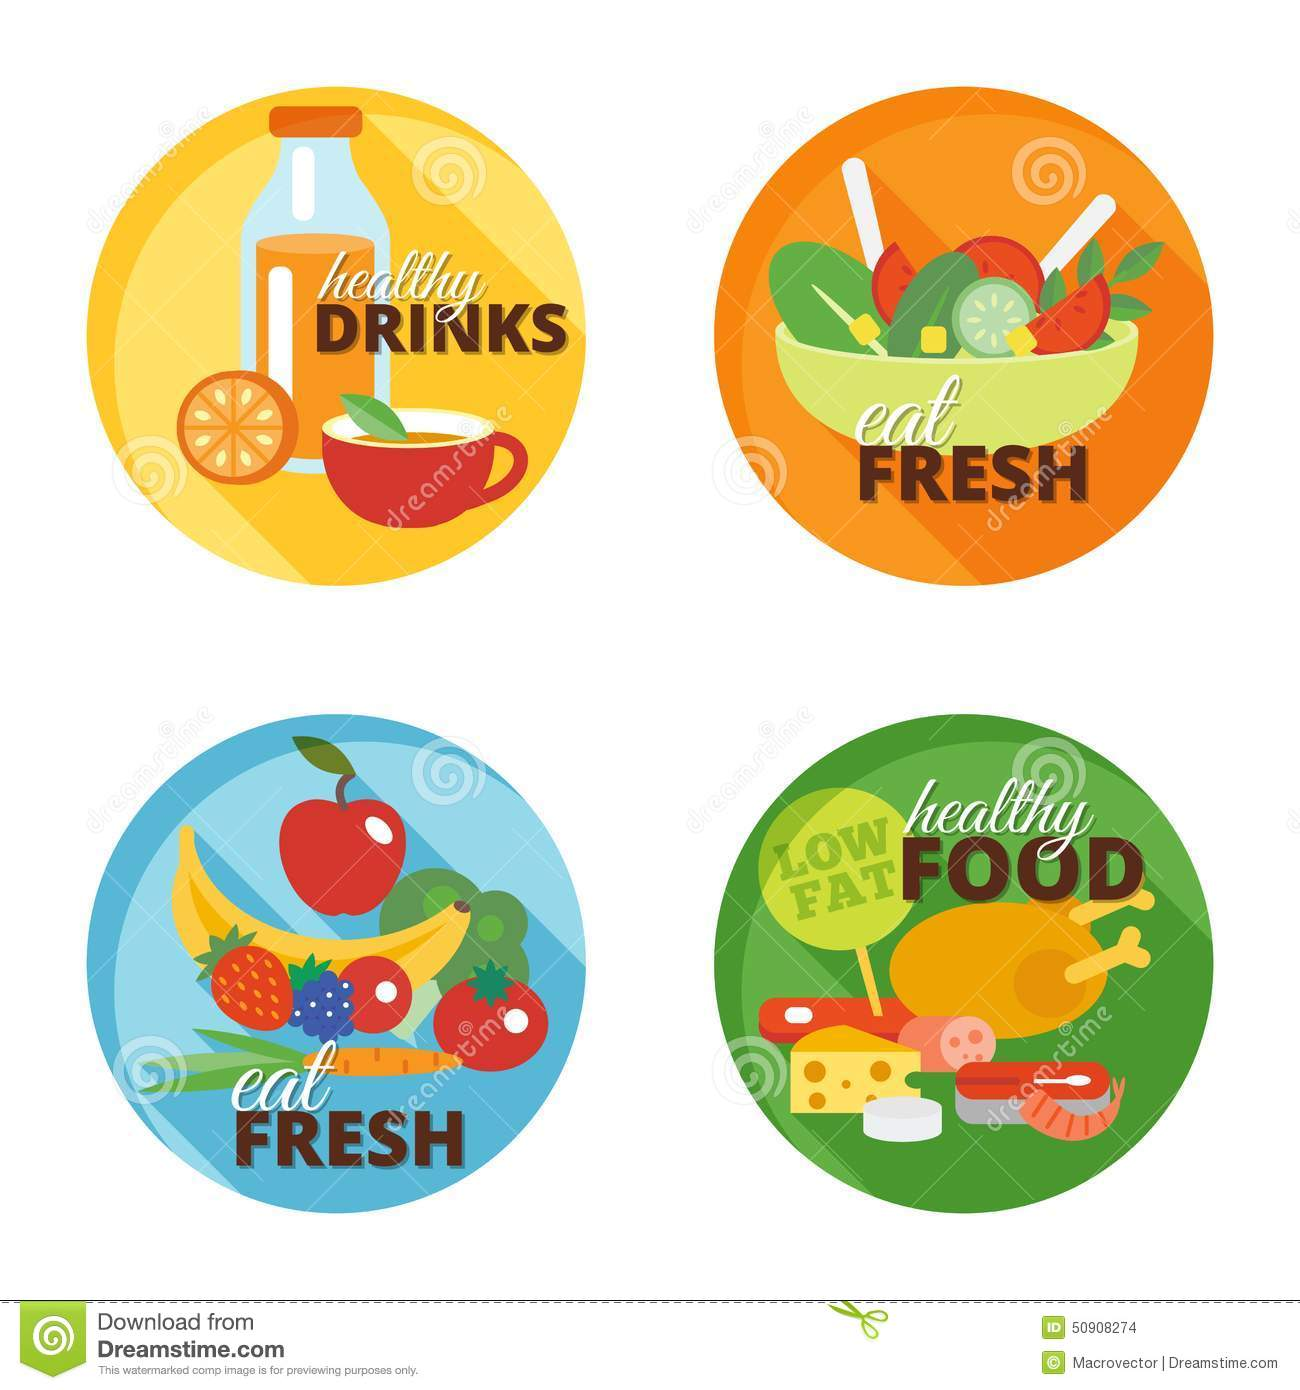 Healthy eating flat icon stock vector. Image of green ...